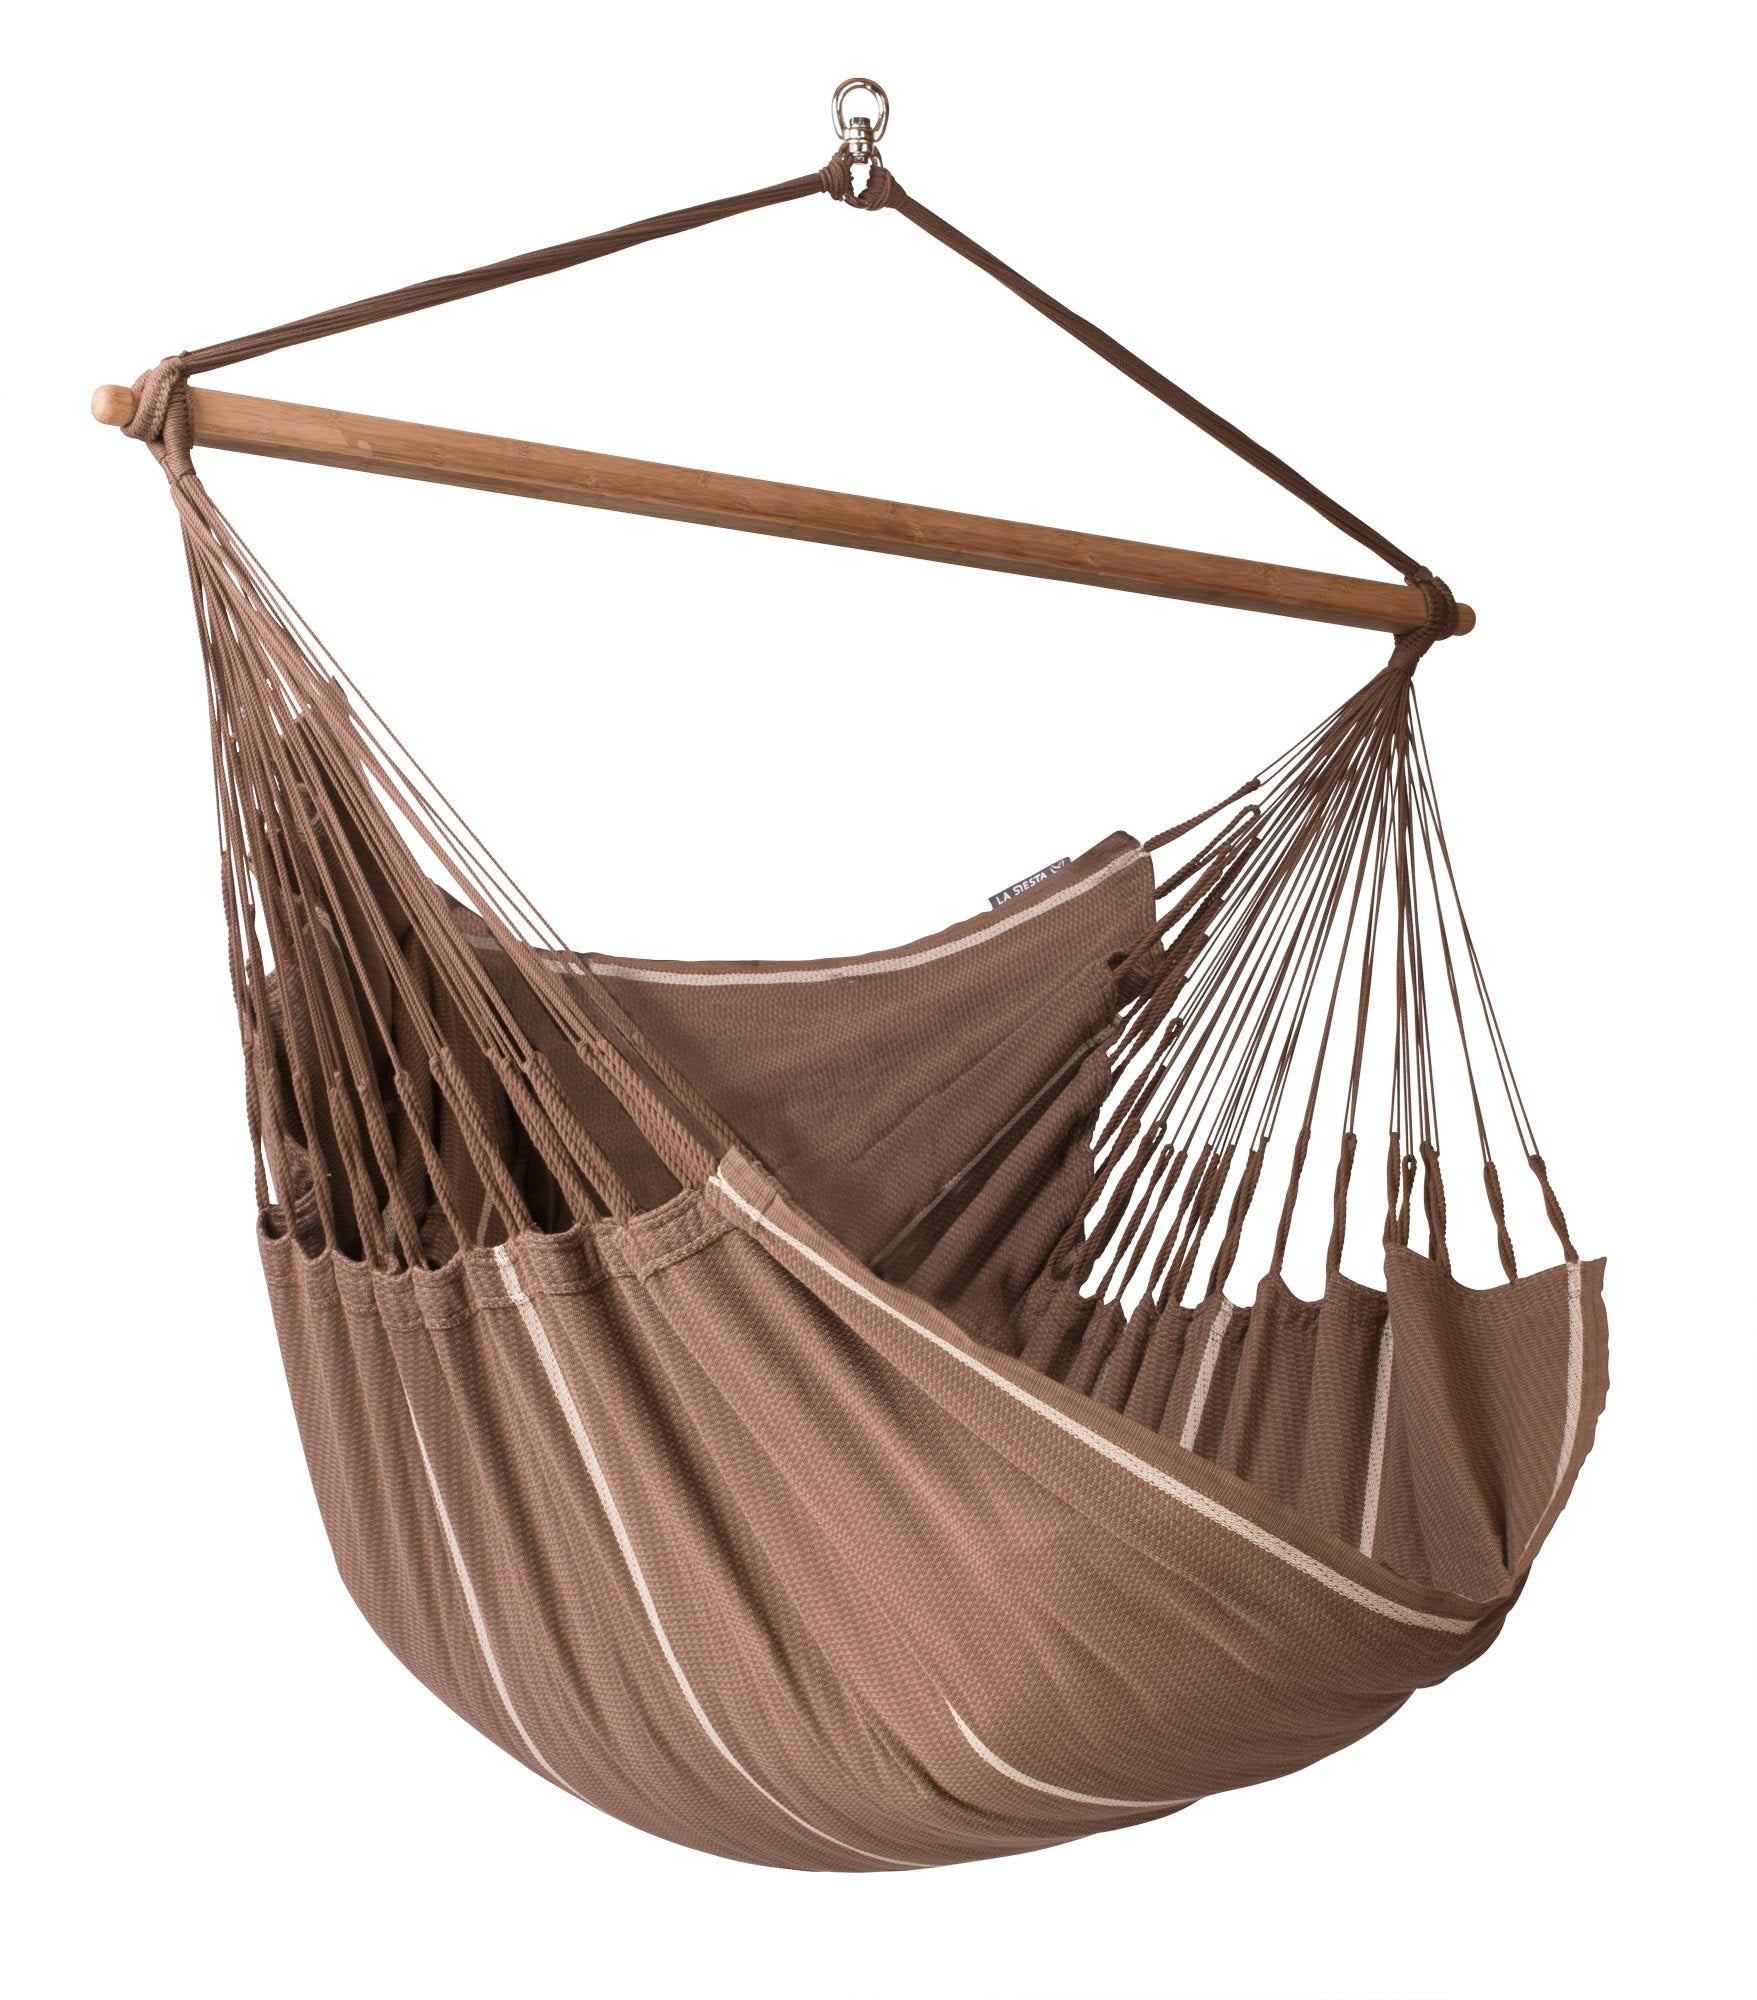 stand home ideas swing hammock chair design double